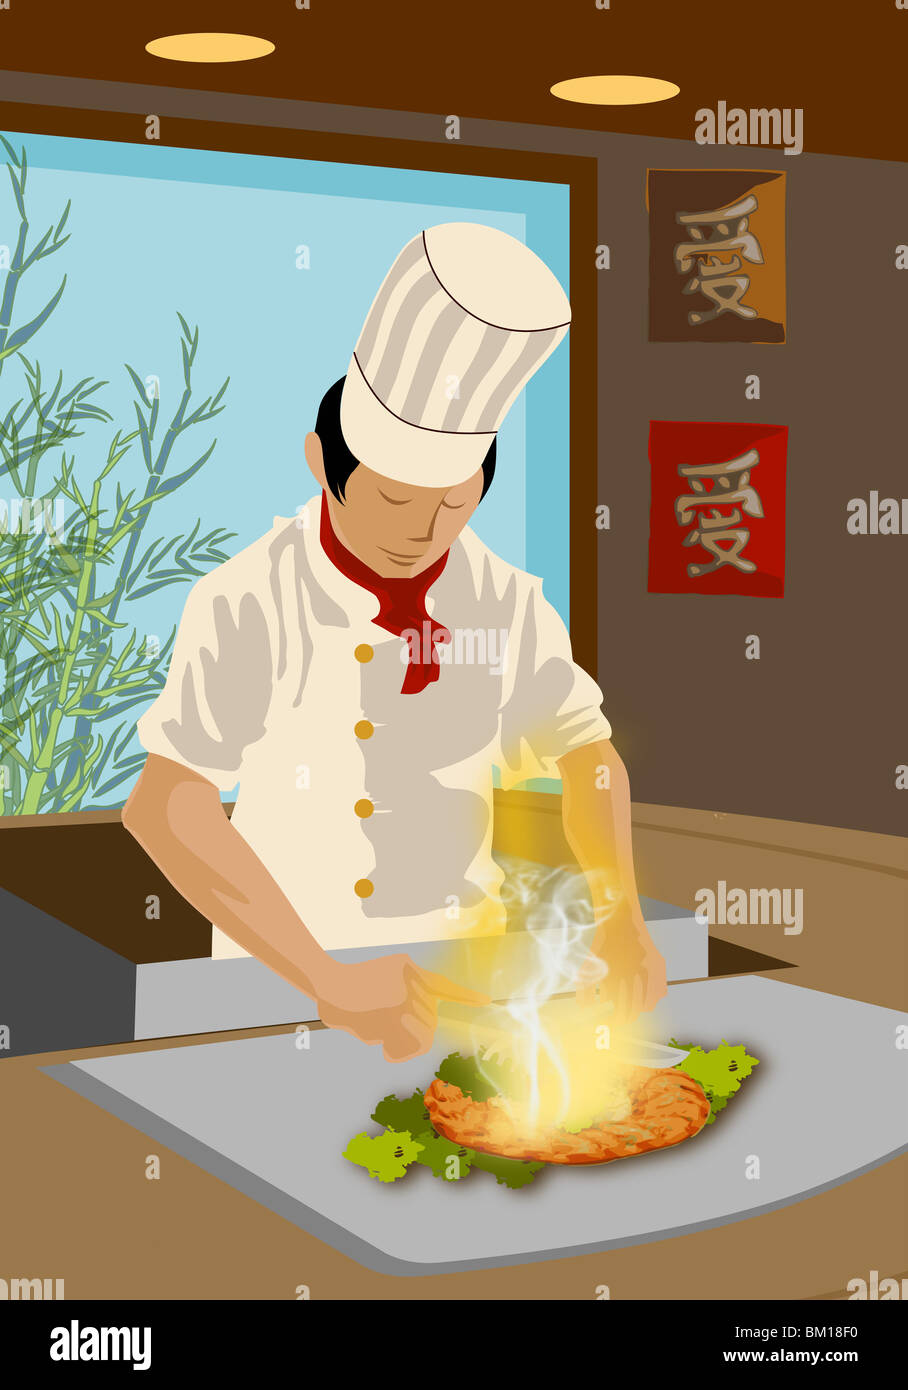 Chef Hat Clipart Stock Photos Amp Chef Hat Clipart Stock